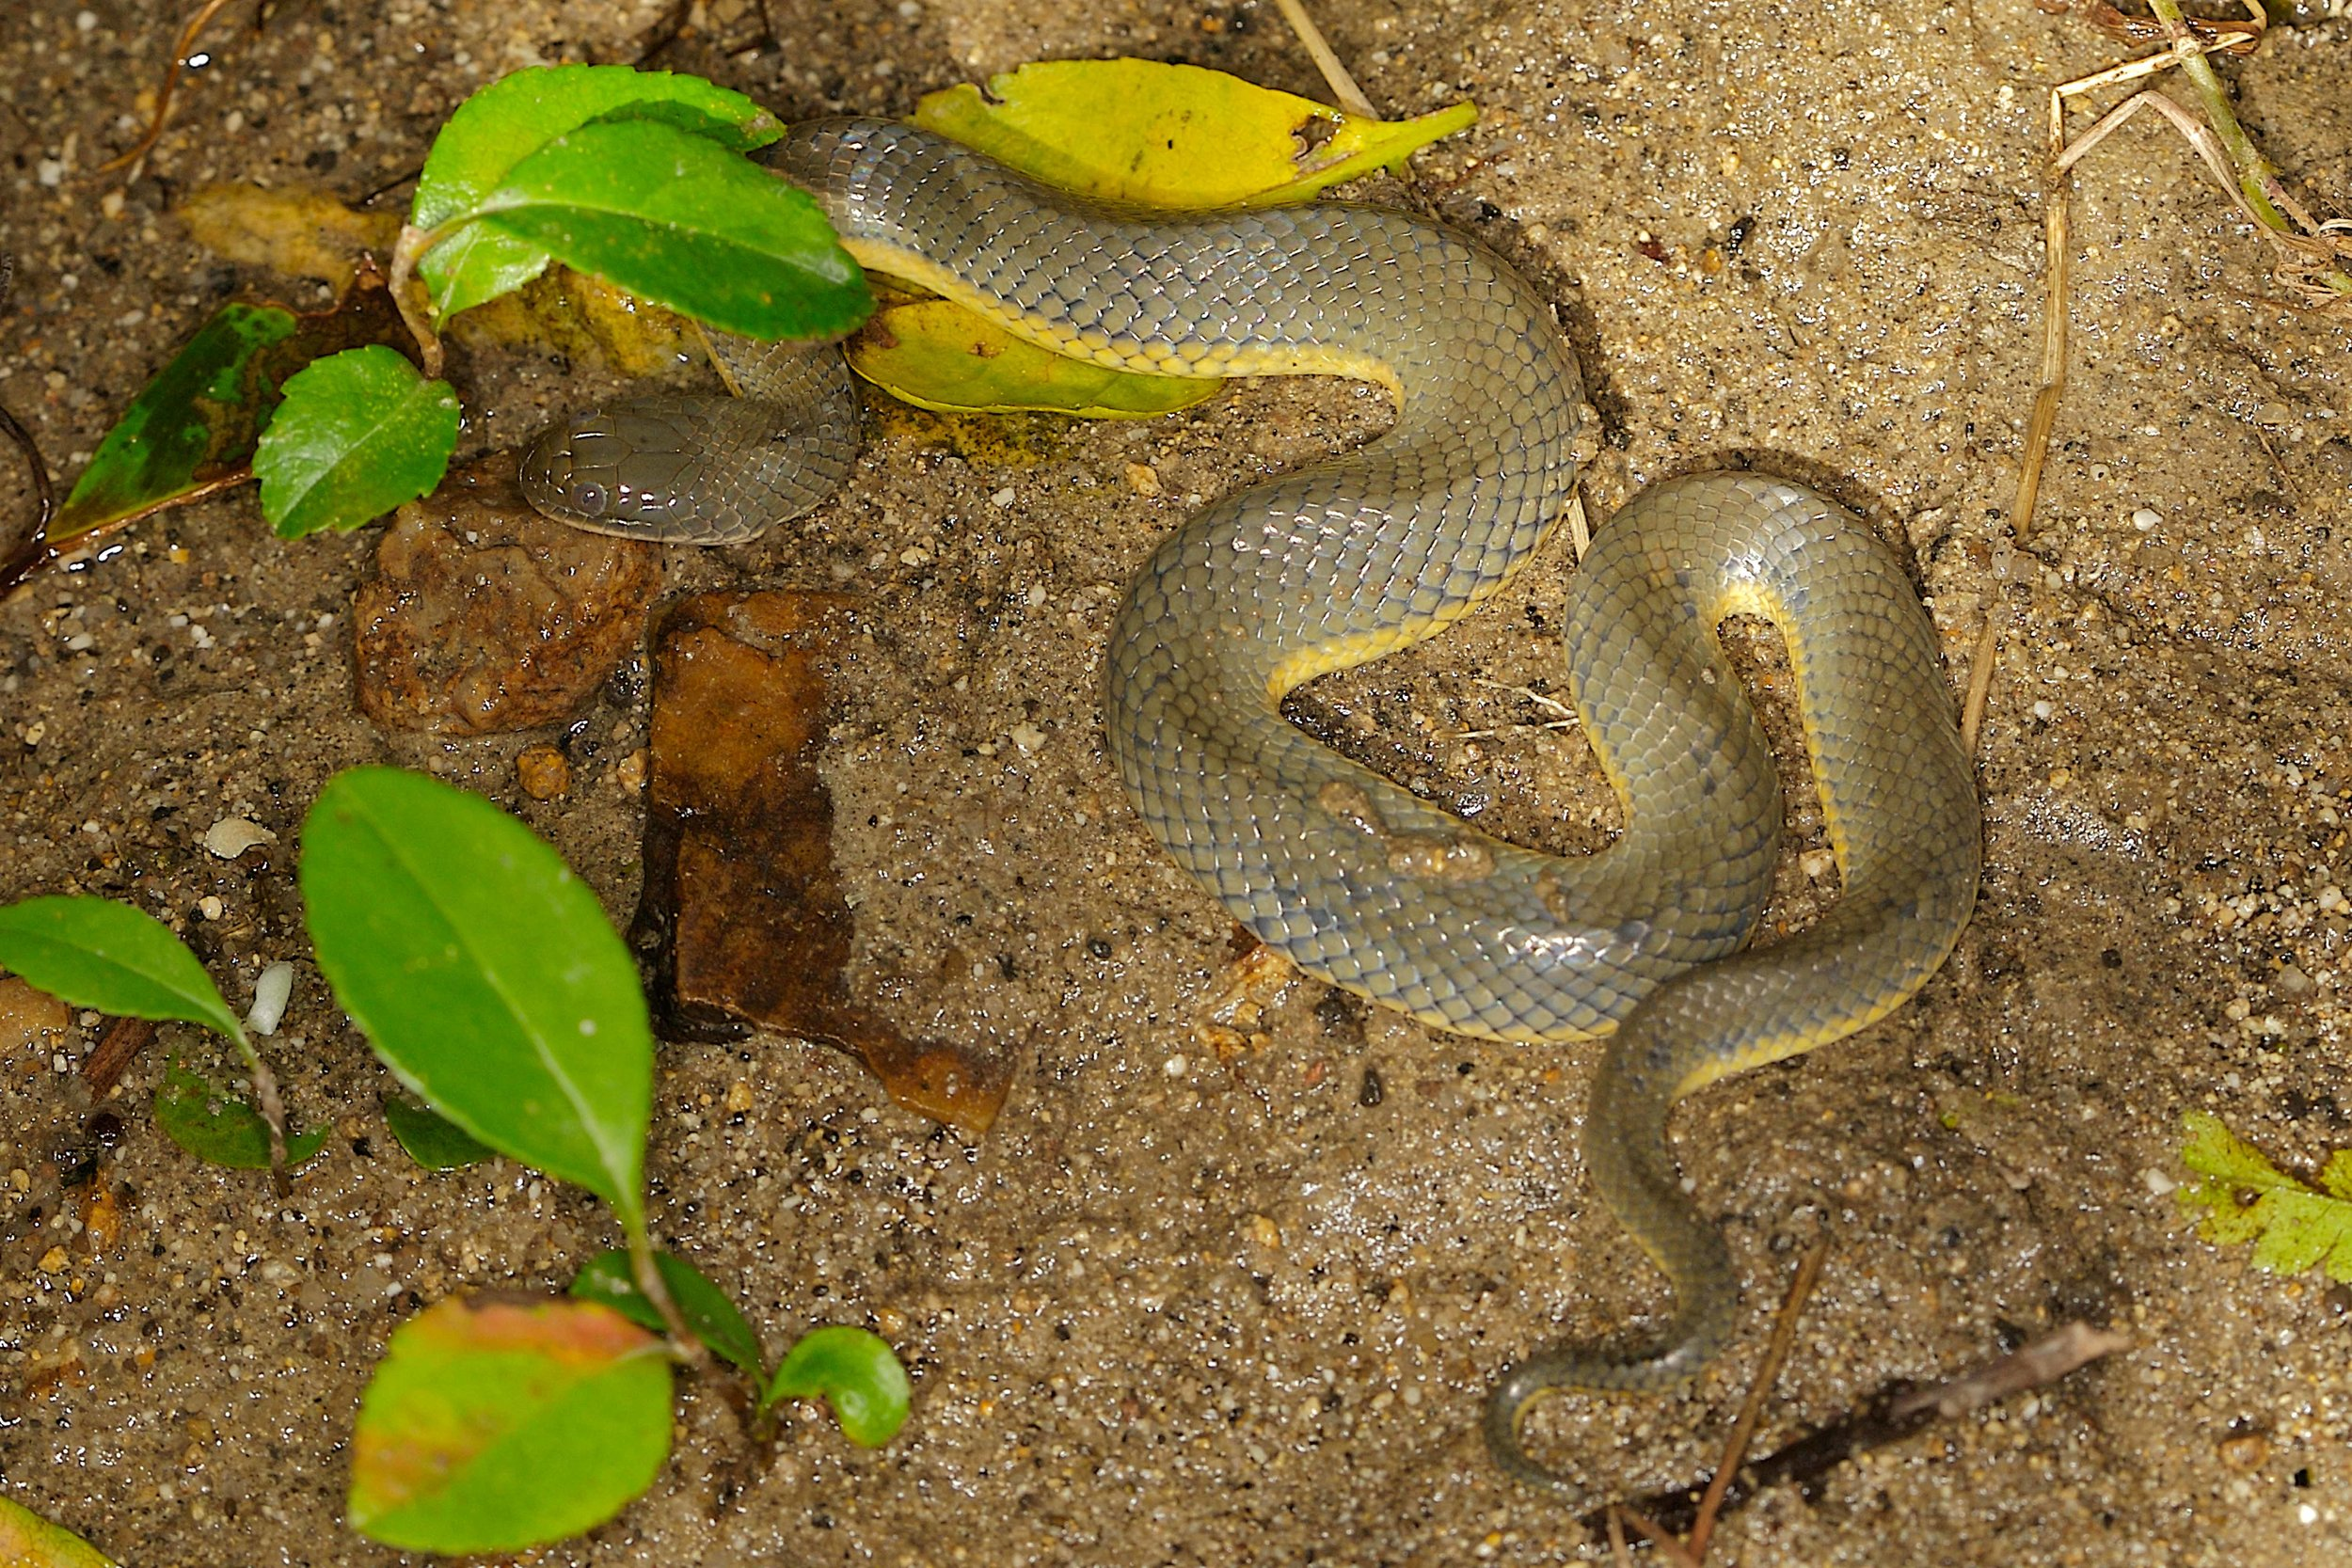 Copy of Plumbeous Water Snake